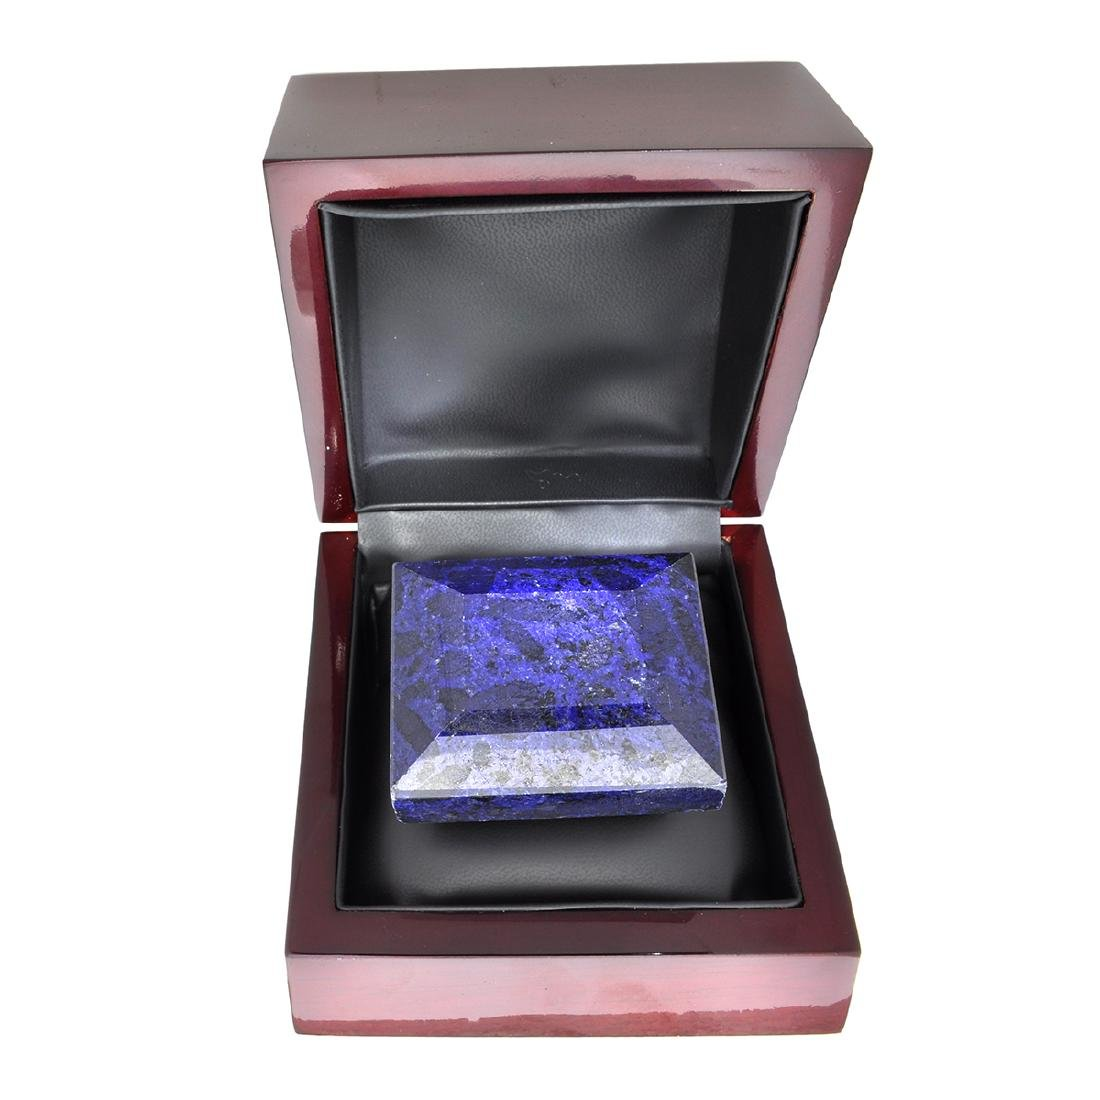 APP: 4.4k 1,766.90CT Rectangular Step Cut Blue Sapphire